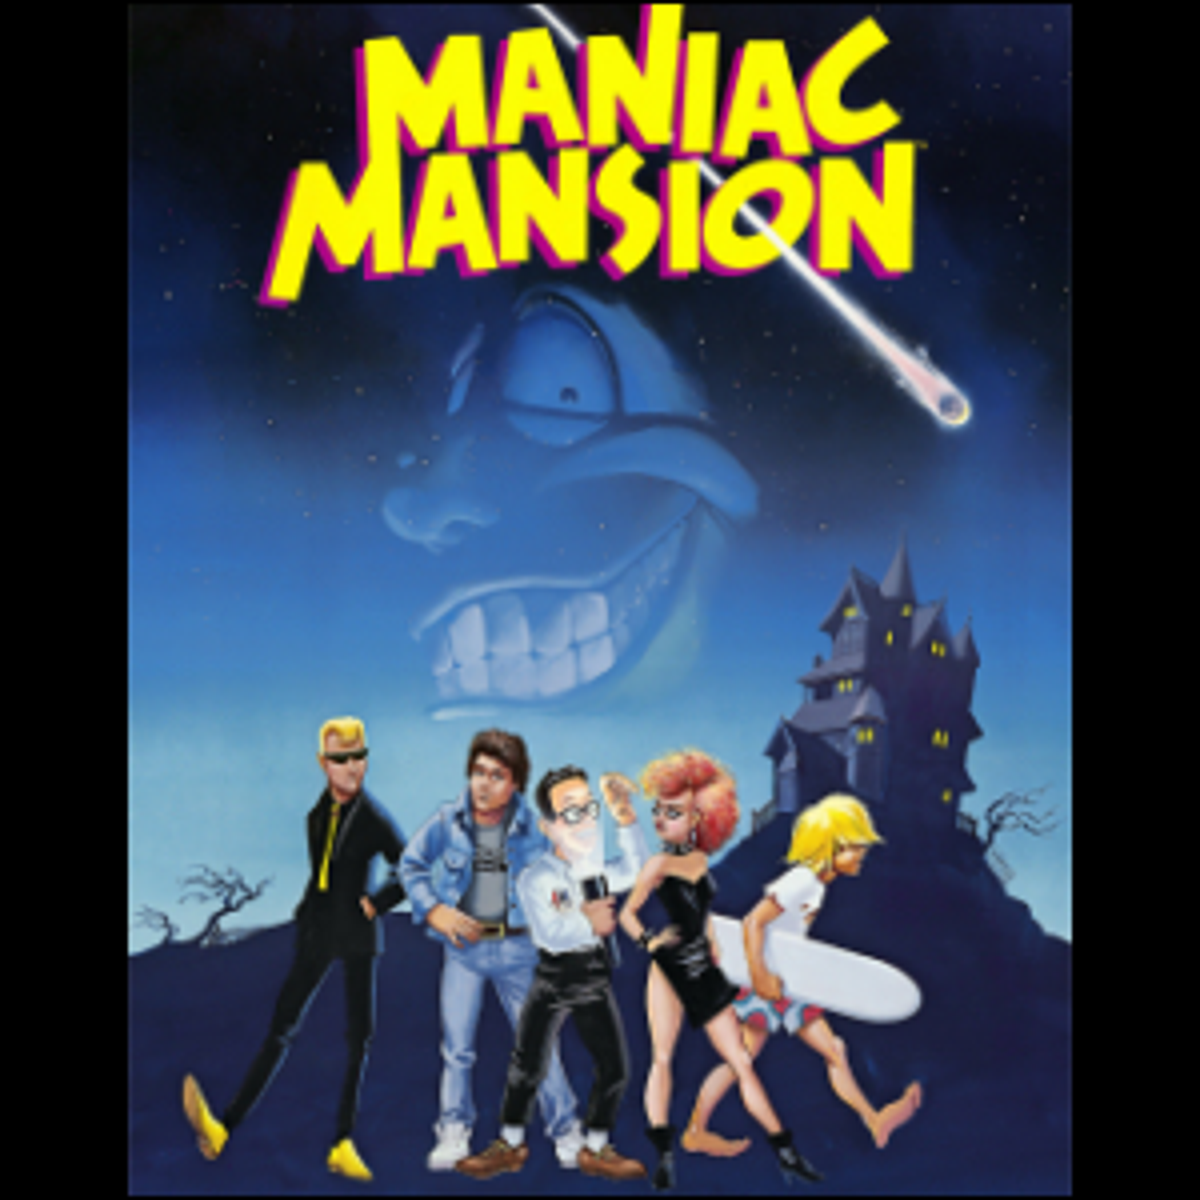 The cover artwork for Maniac Mansion.